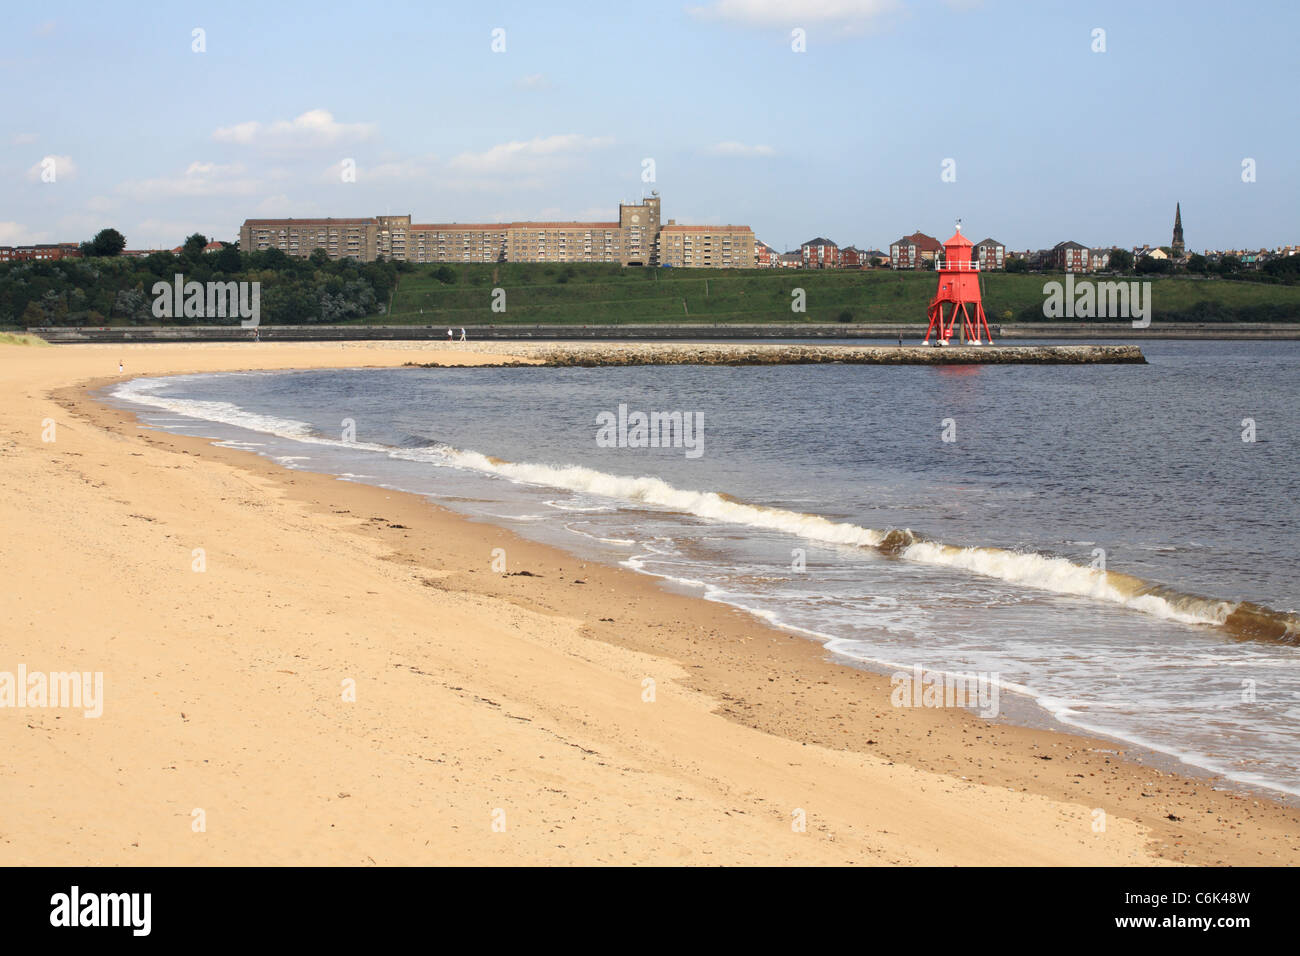 Littlehaven or Herd Sand beach and Groyne lighthouse at South Shields, North East England - Stock Image